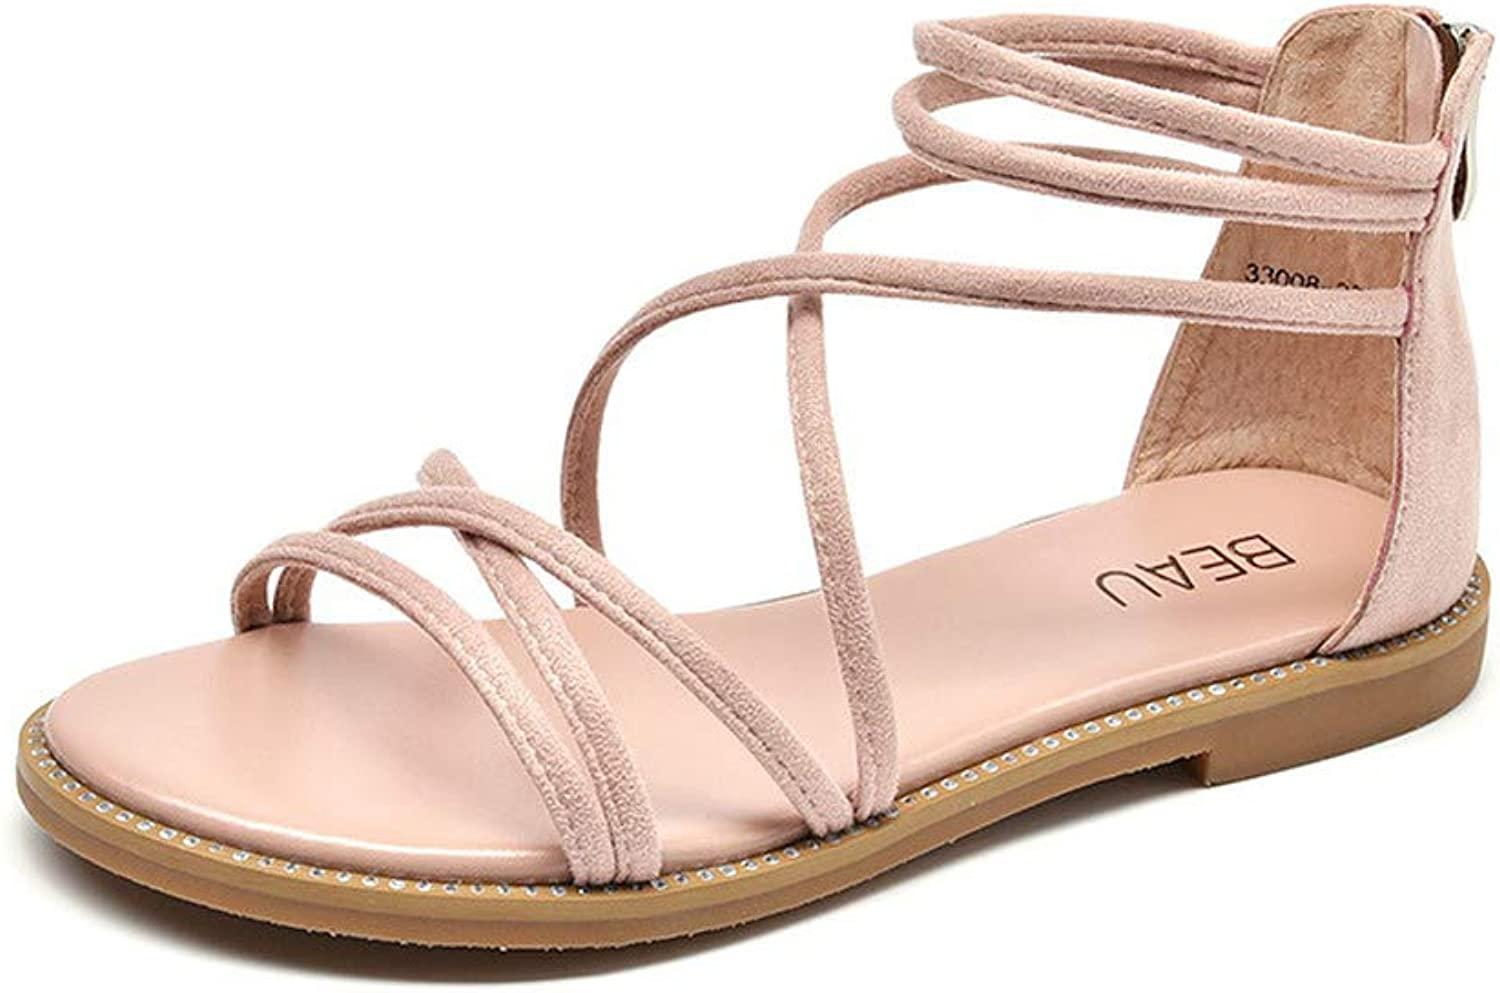 Pophight Women Flat Sandals Gladiator Sandals Roman Cross Strappy Ankle Strap Open Toe Leather Summer Casual Sandals